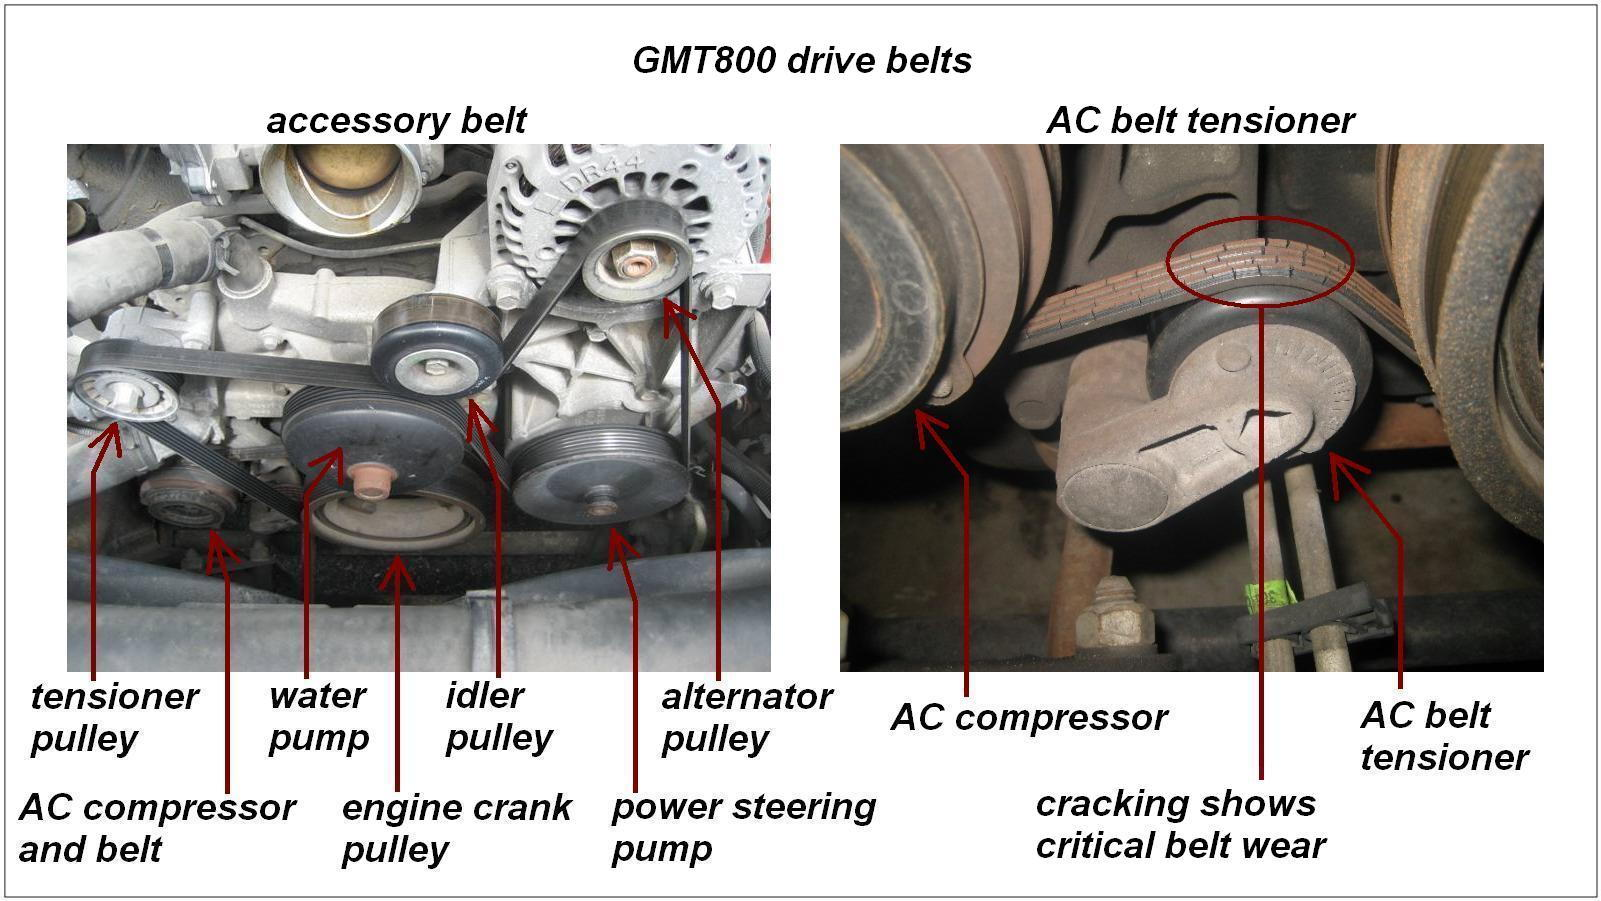 Gmt Drivebelts besides Maxresdefault further  together with No Cig Lighter Radio Dome Light Hatch Release Third Of Camaro Radio Wiring Diagram additionally Chevy Silverado Tail Light Wiring Diagram Chevy Silverado Tail Light Wiring Diagram Britishpanto Wiring Of Chevy Silverado Tail Light Wiring Diagram. on alternator diagram 1999 chevy camaro